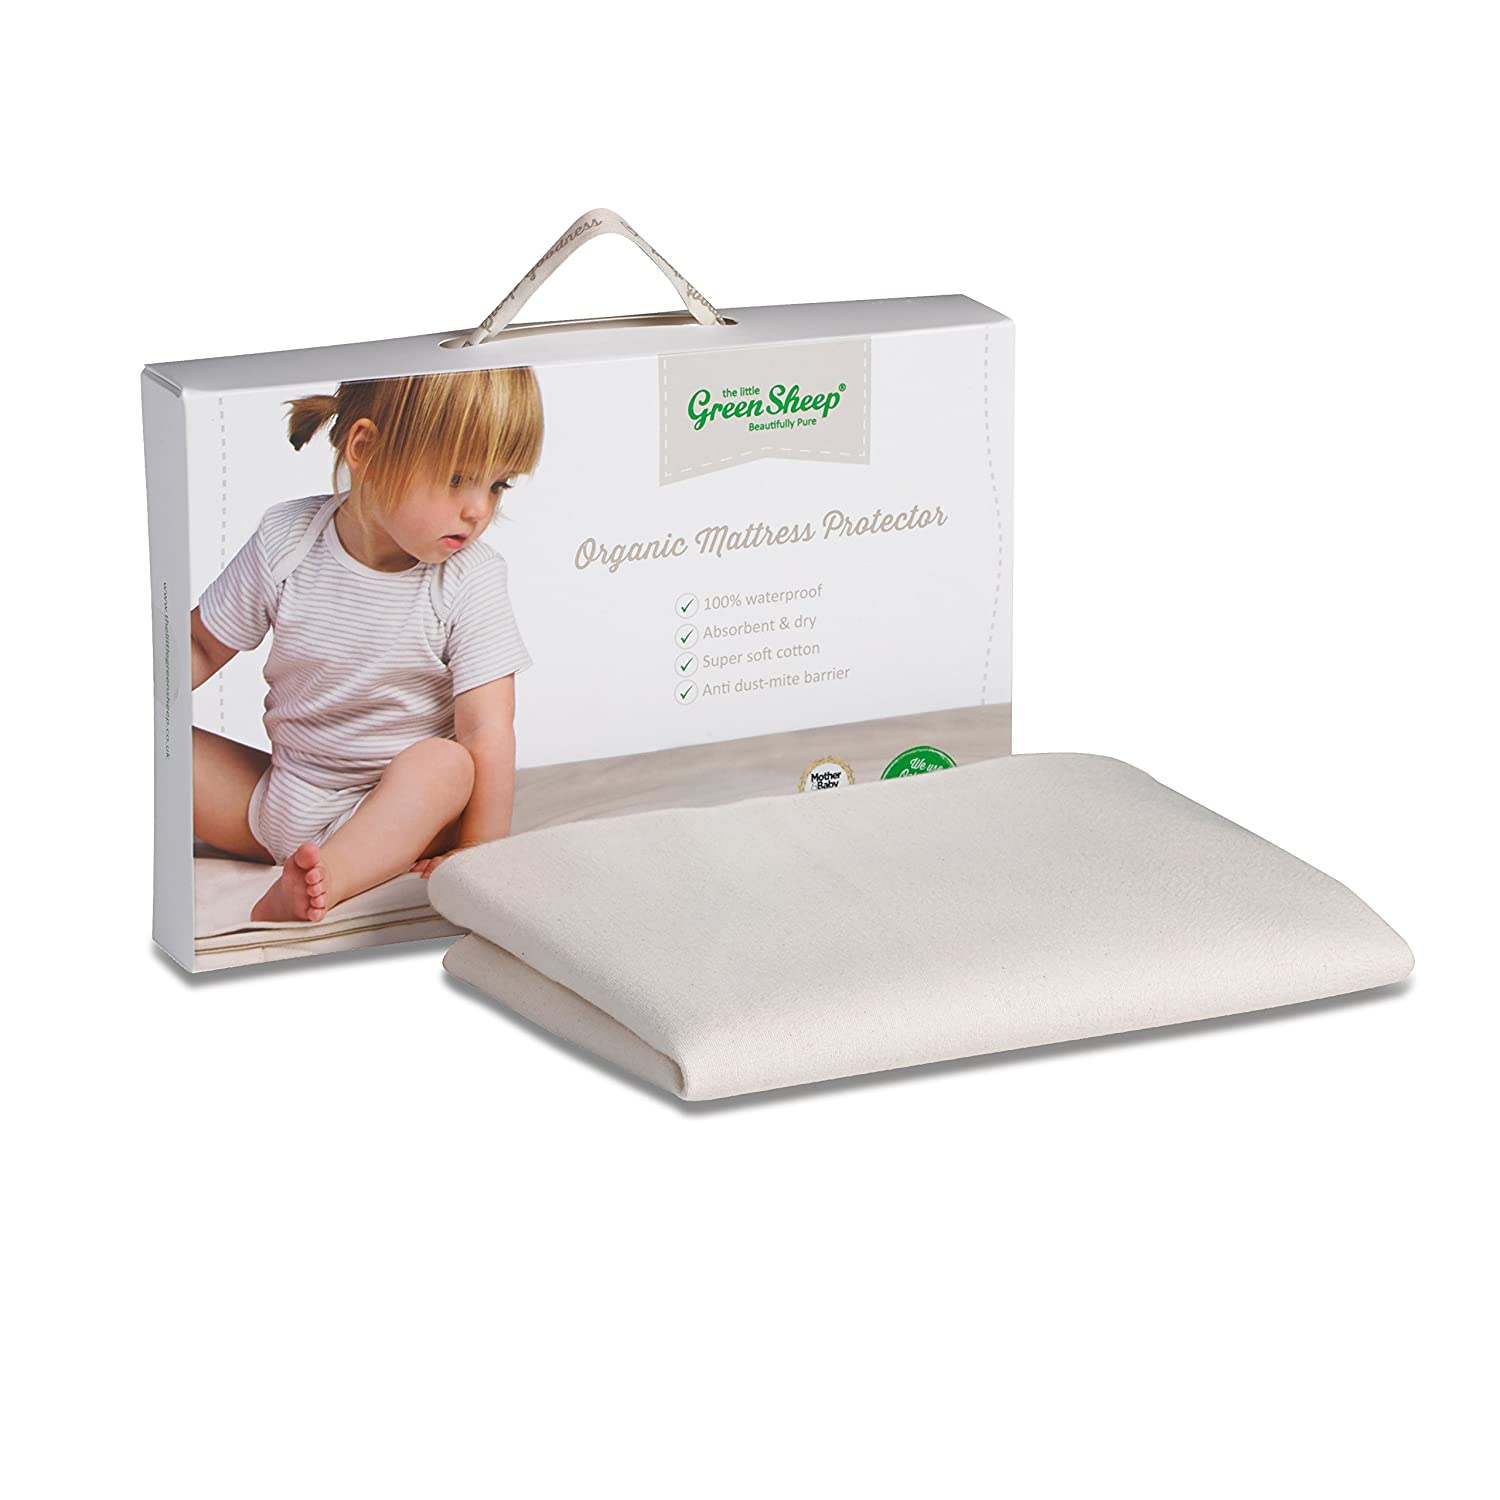 graco matress products beginnings customers and toddler crib safesleep also secure walmart ip viewed premium mattress breathable these cribs foam com